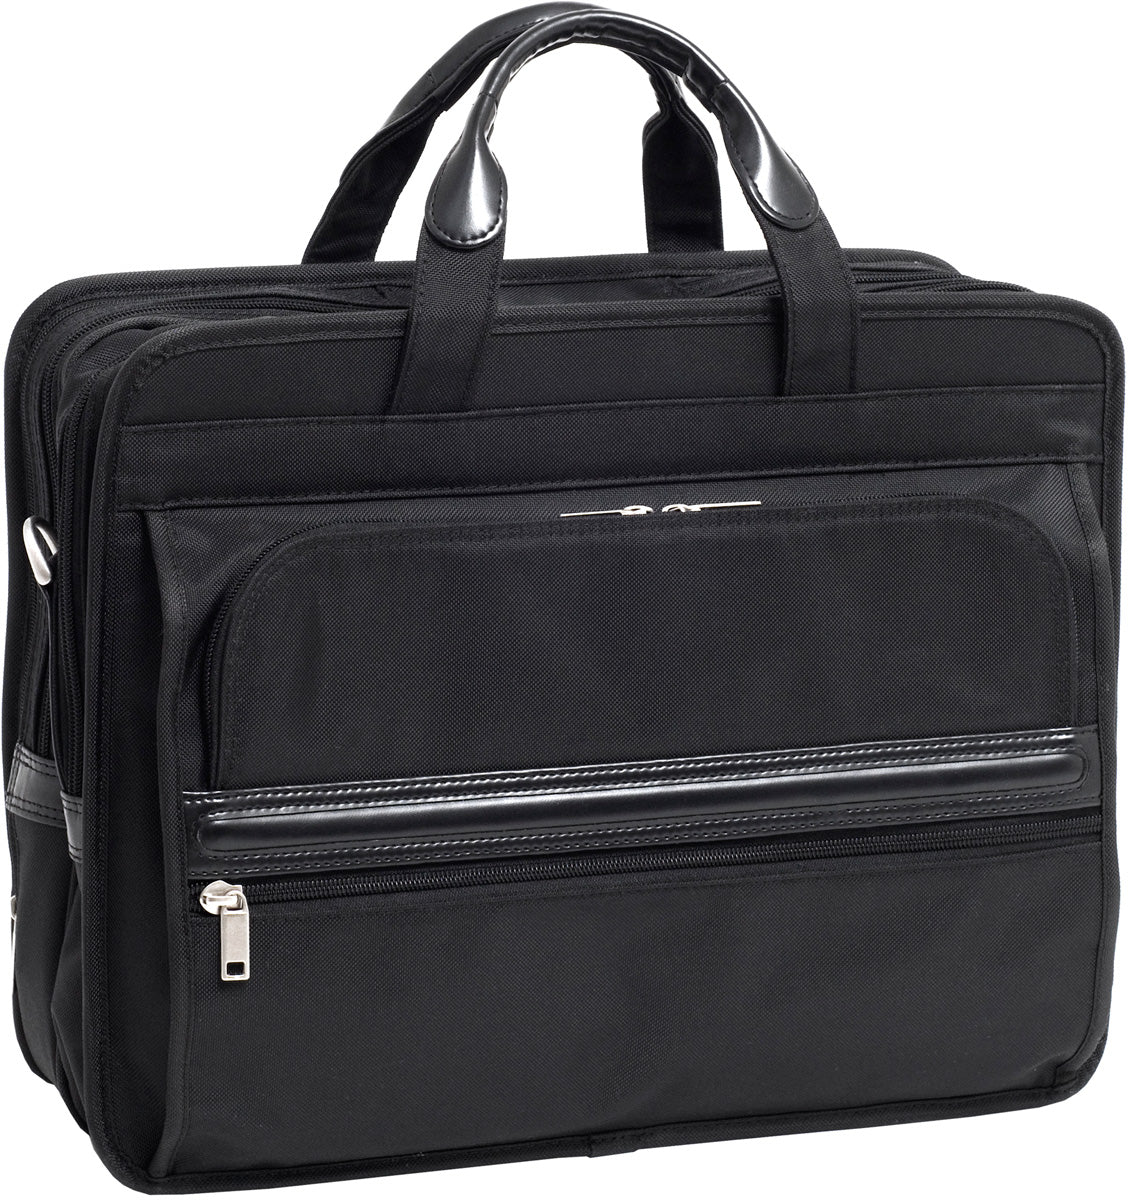 McKlein P Series Elston Nylon Dbl Compartment Laptop Case